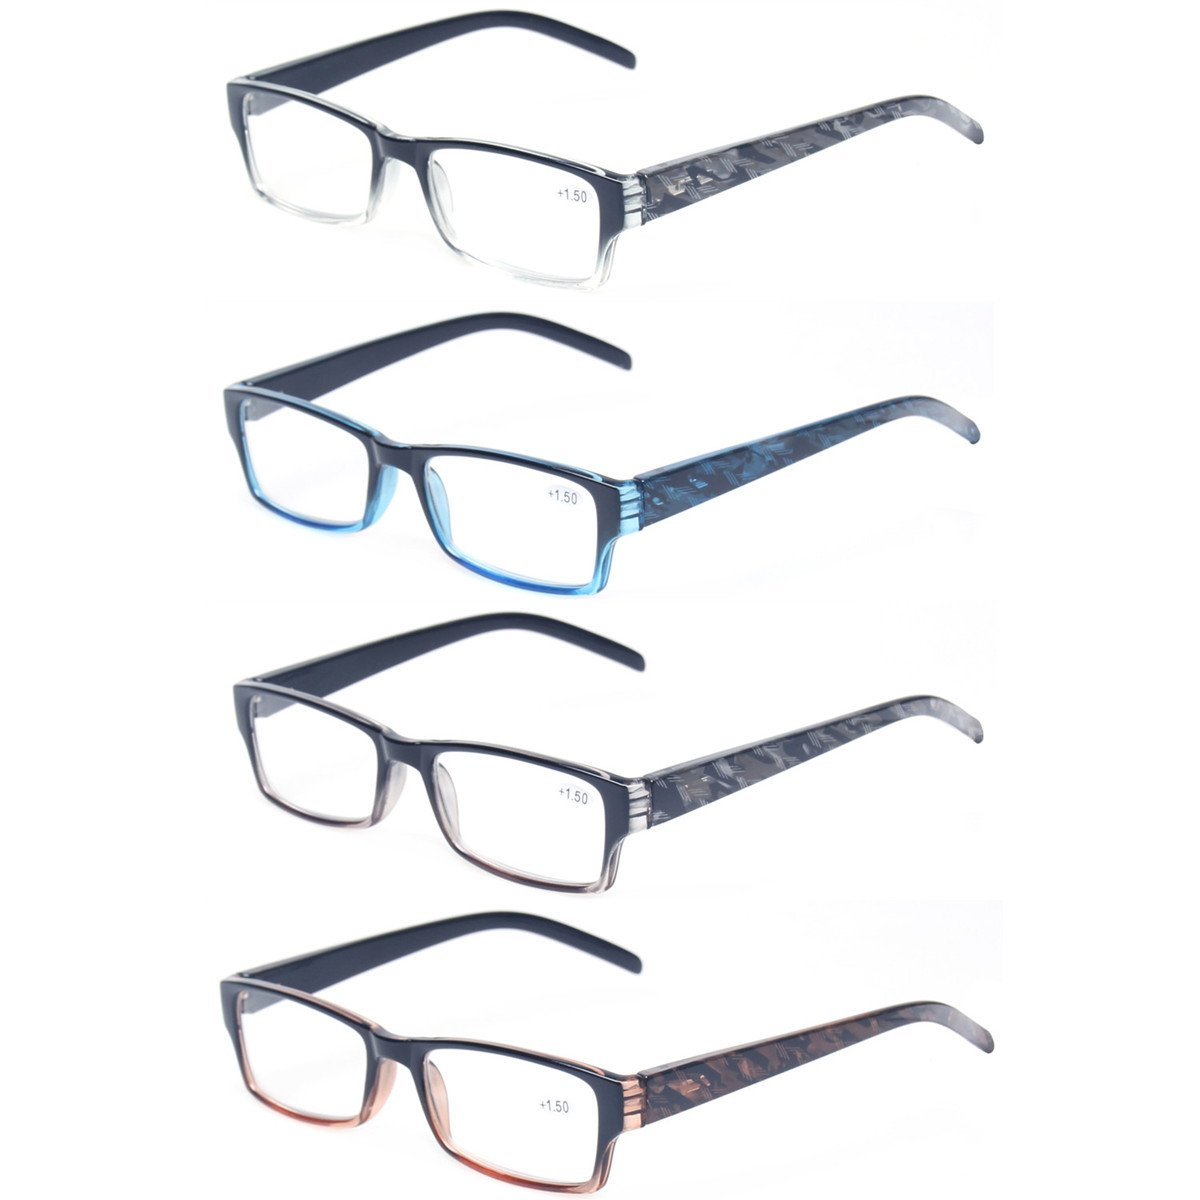 Reading Glasses 4 Pairs Fashion Spring Hinge Readers Great Value Quality Glasses (4 Pack Mix Color, 2.00) by Kerecsen